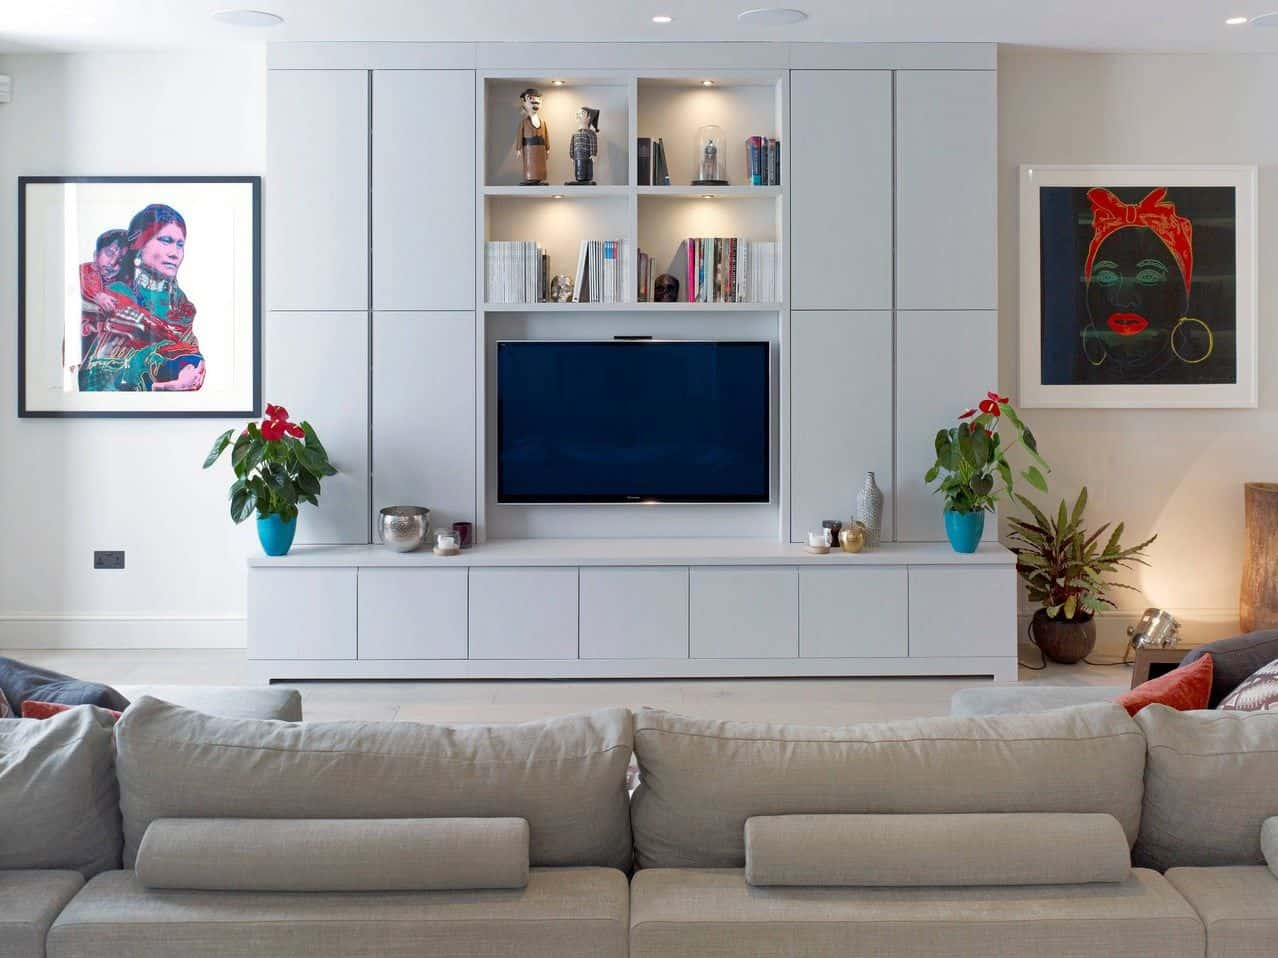 White living room with a gray sofa that faces the built-in tv stand with open shelving. It is accented with lovely portraits and potted plants.